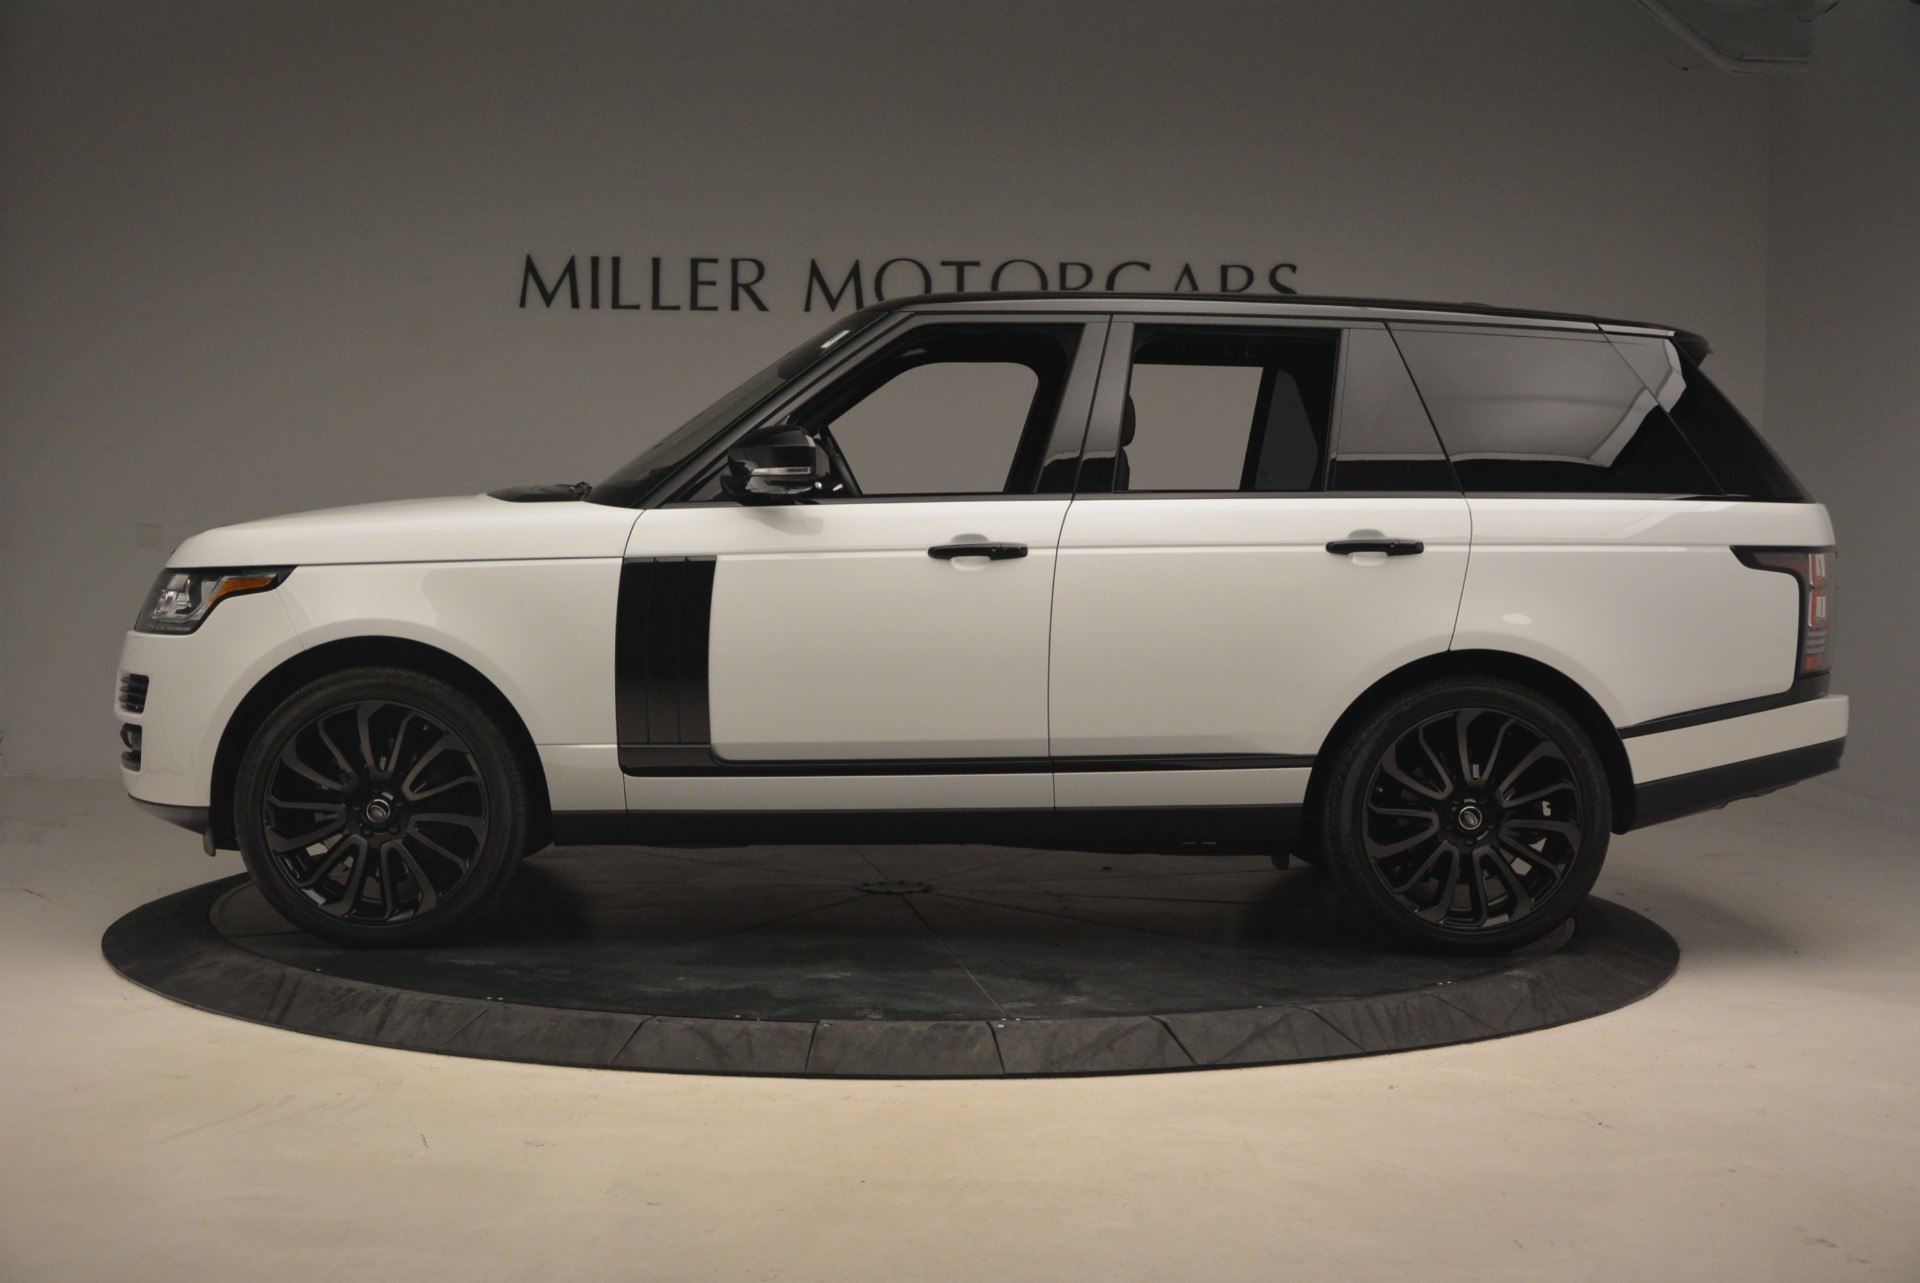 Used 2015 Land Rover Range Rover Supercharged For Sale In Westport, CT 1292_p3